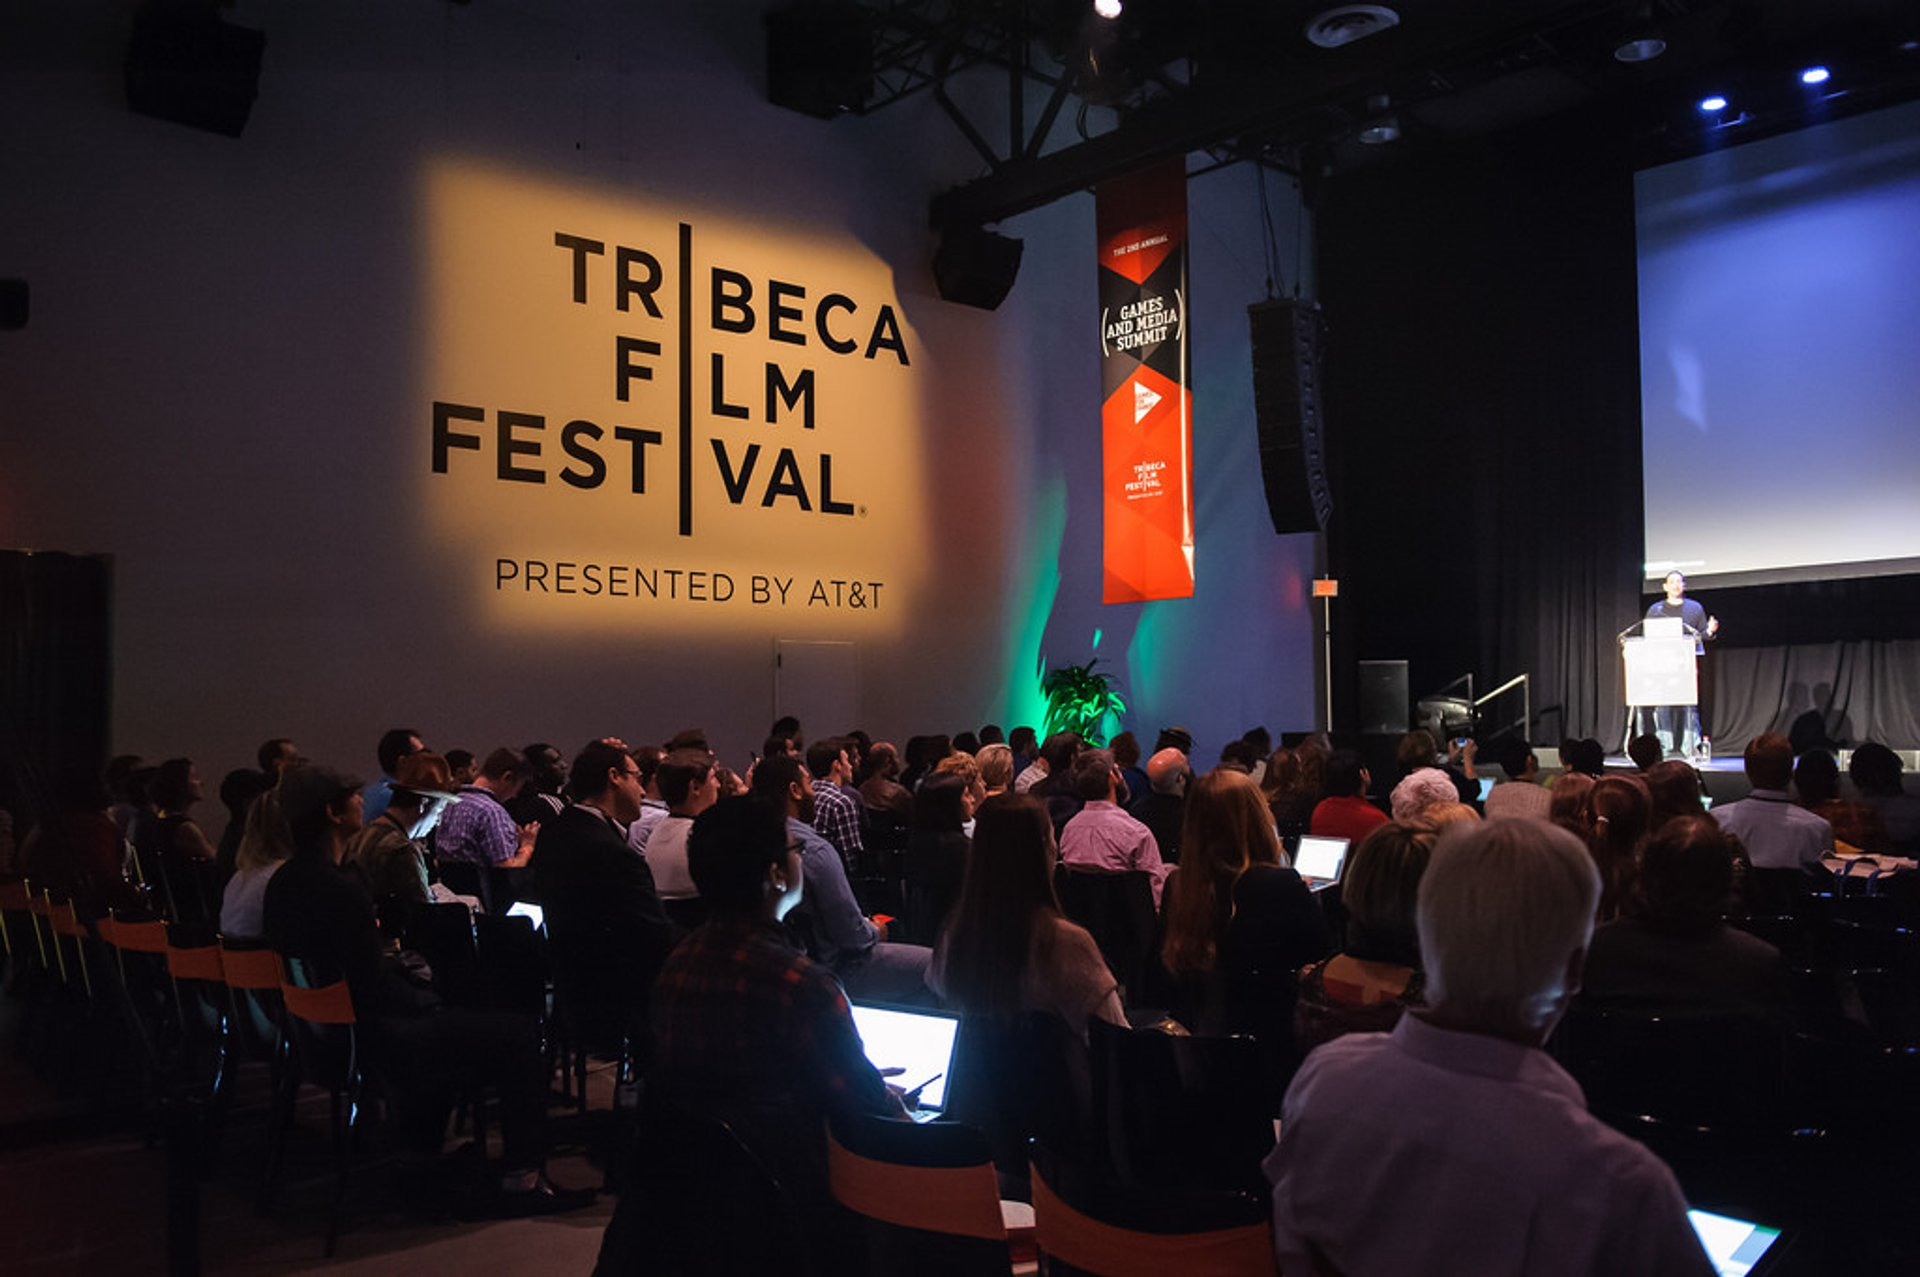 Tribeca Film Festival in New York 2019 - Best Time